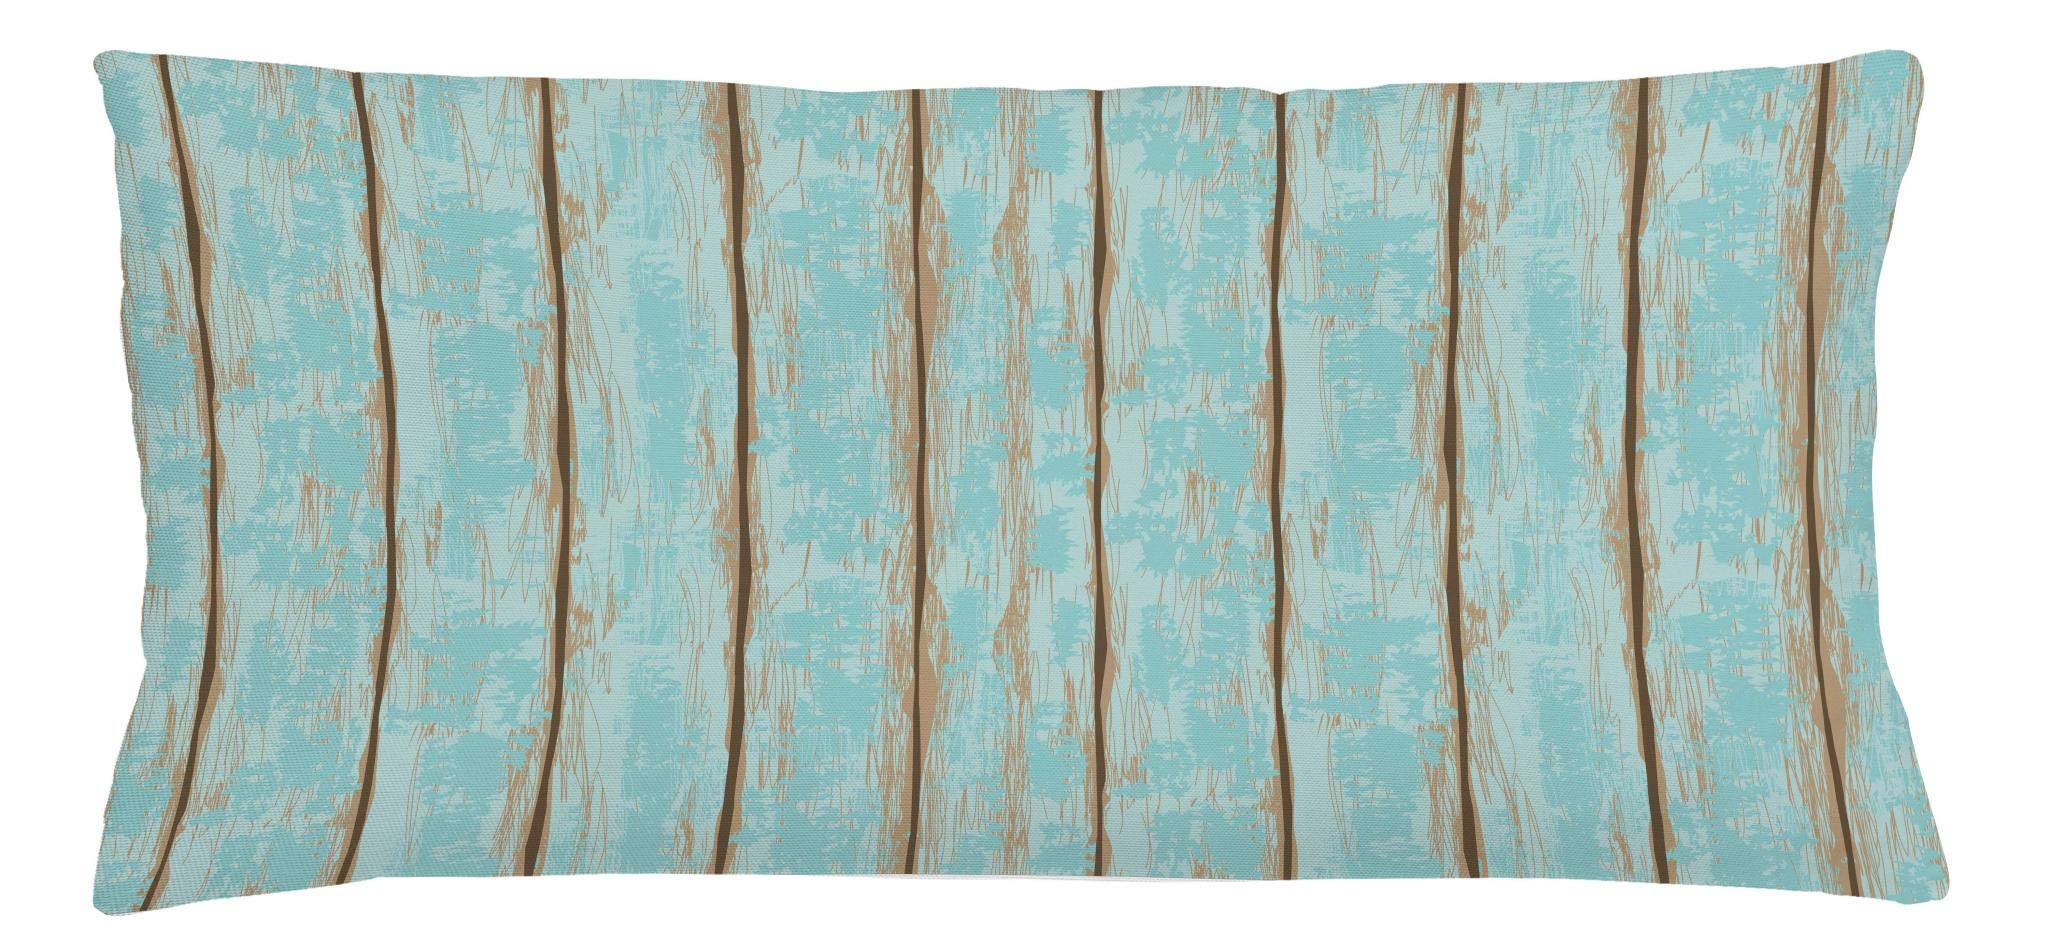 Lunarable Wood Print Throw Pillow Cushion Cover, Old Fashioned Weathered Rustic Planks Summer Cottage Beach Coastal Theme, Decorative Square Accent Pillow Case, 36 X 16 Inches, Pale Blue Tan